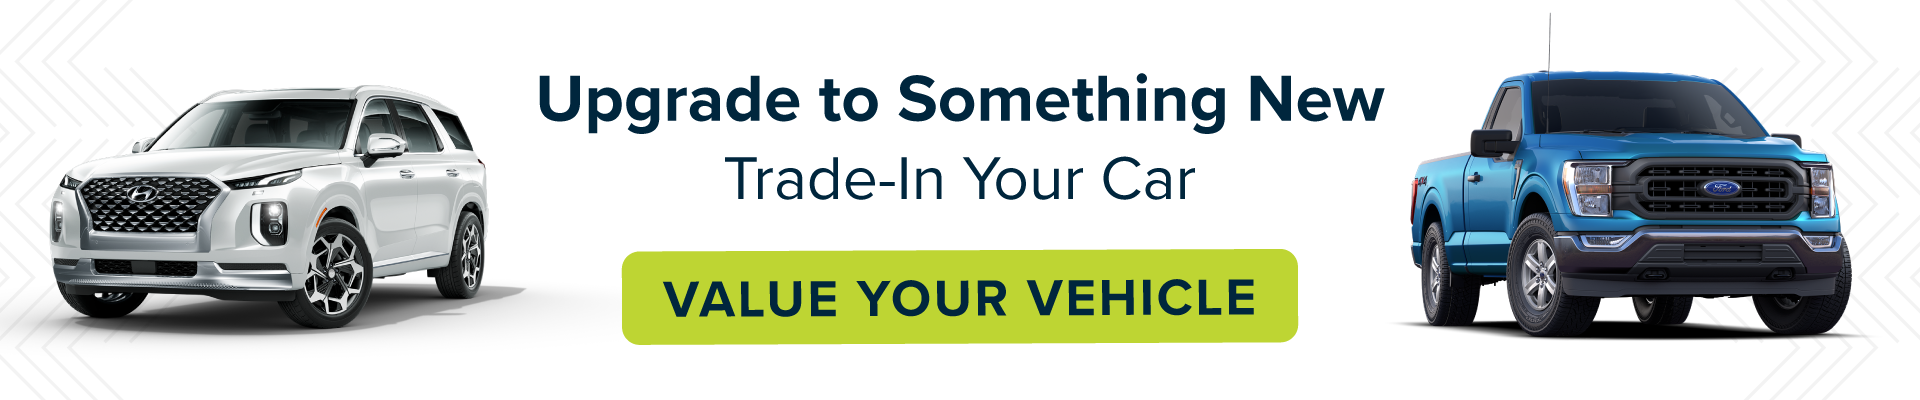 Trade In Your Car Appraisals in Under 30 Minutes